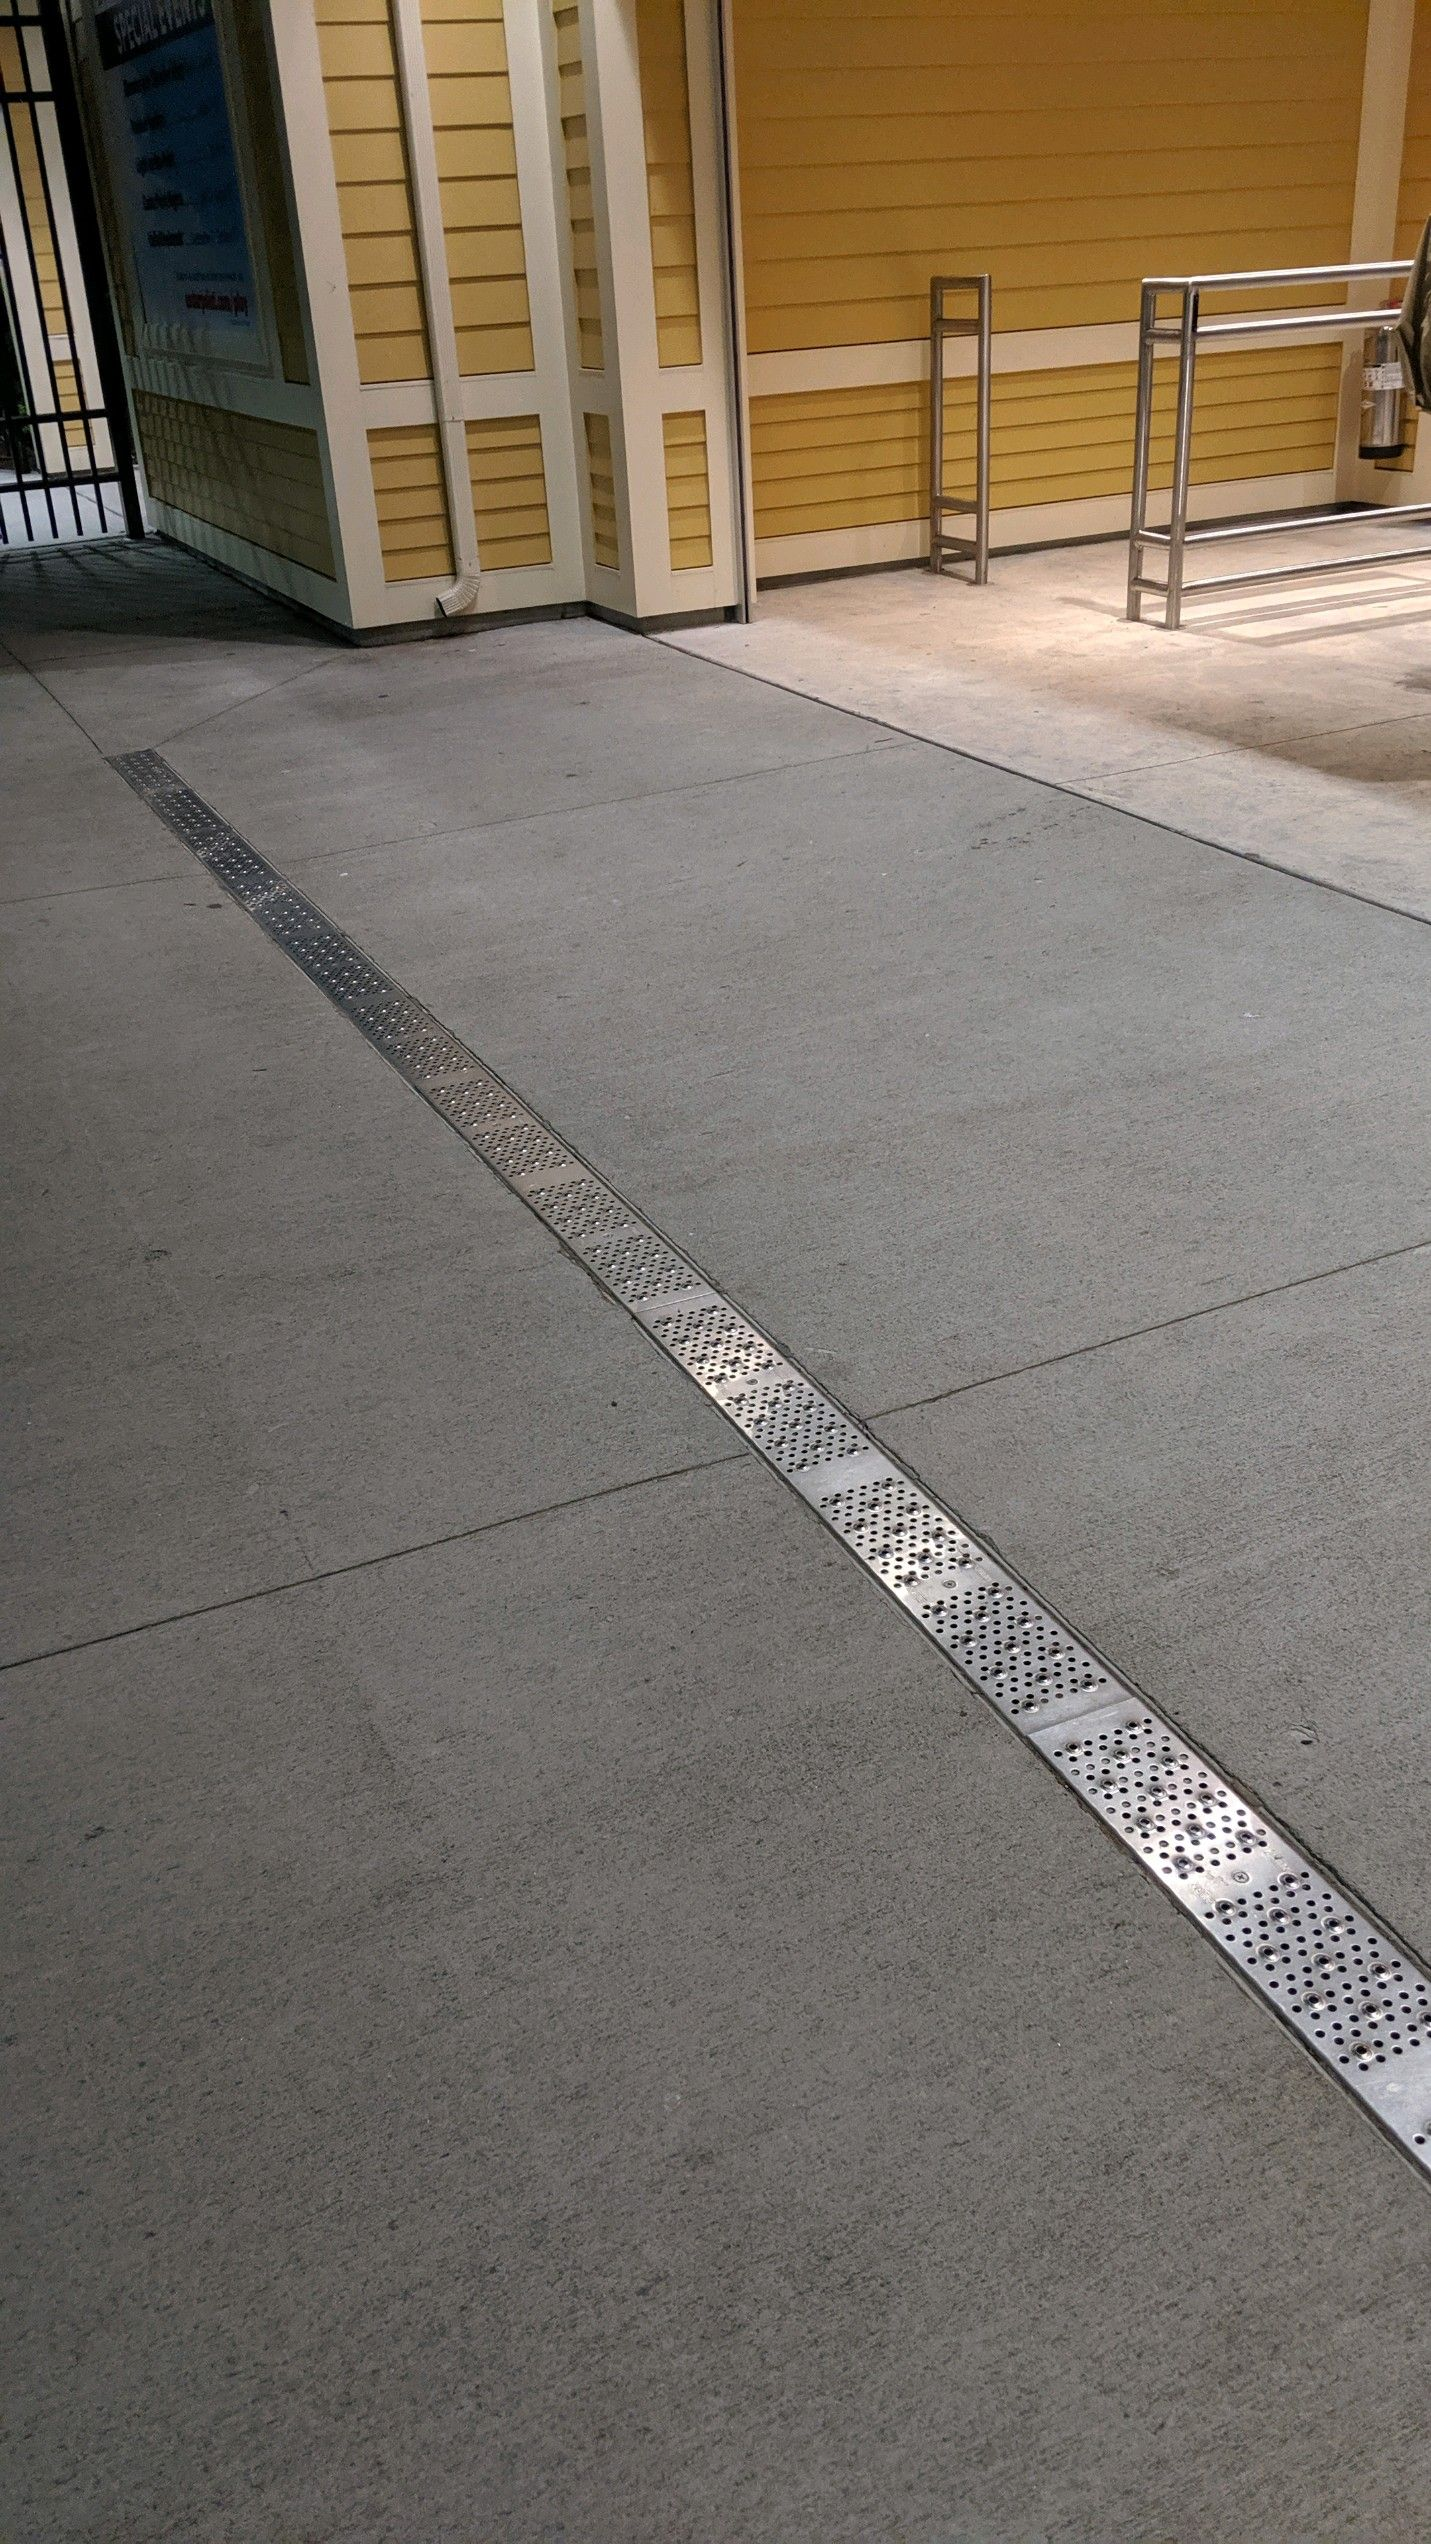 Drains For Pedestrians Trench Drain Drains Trench Drain Systems